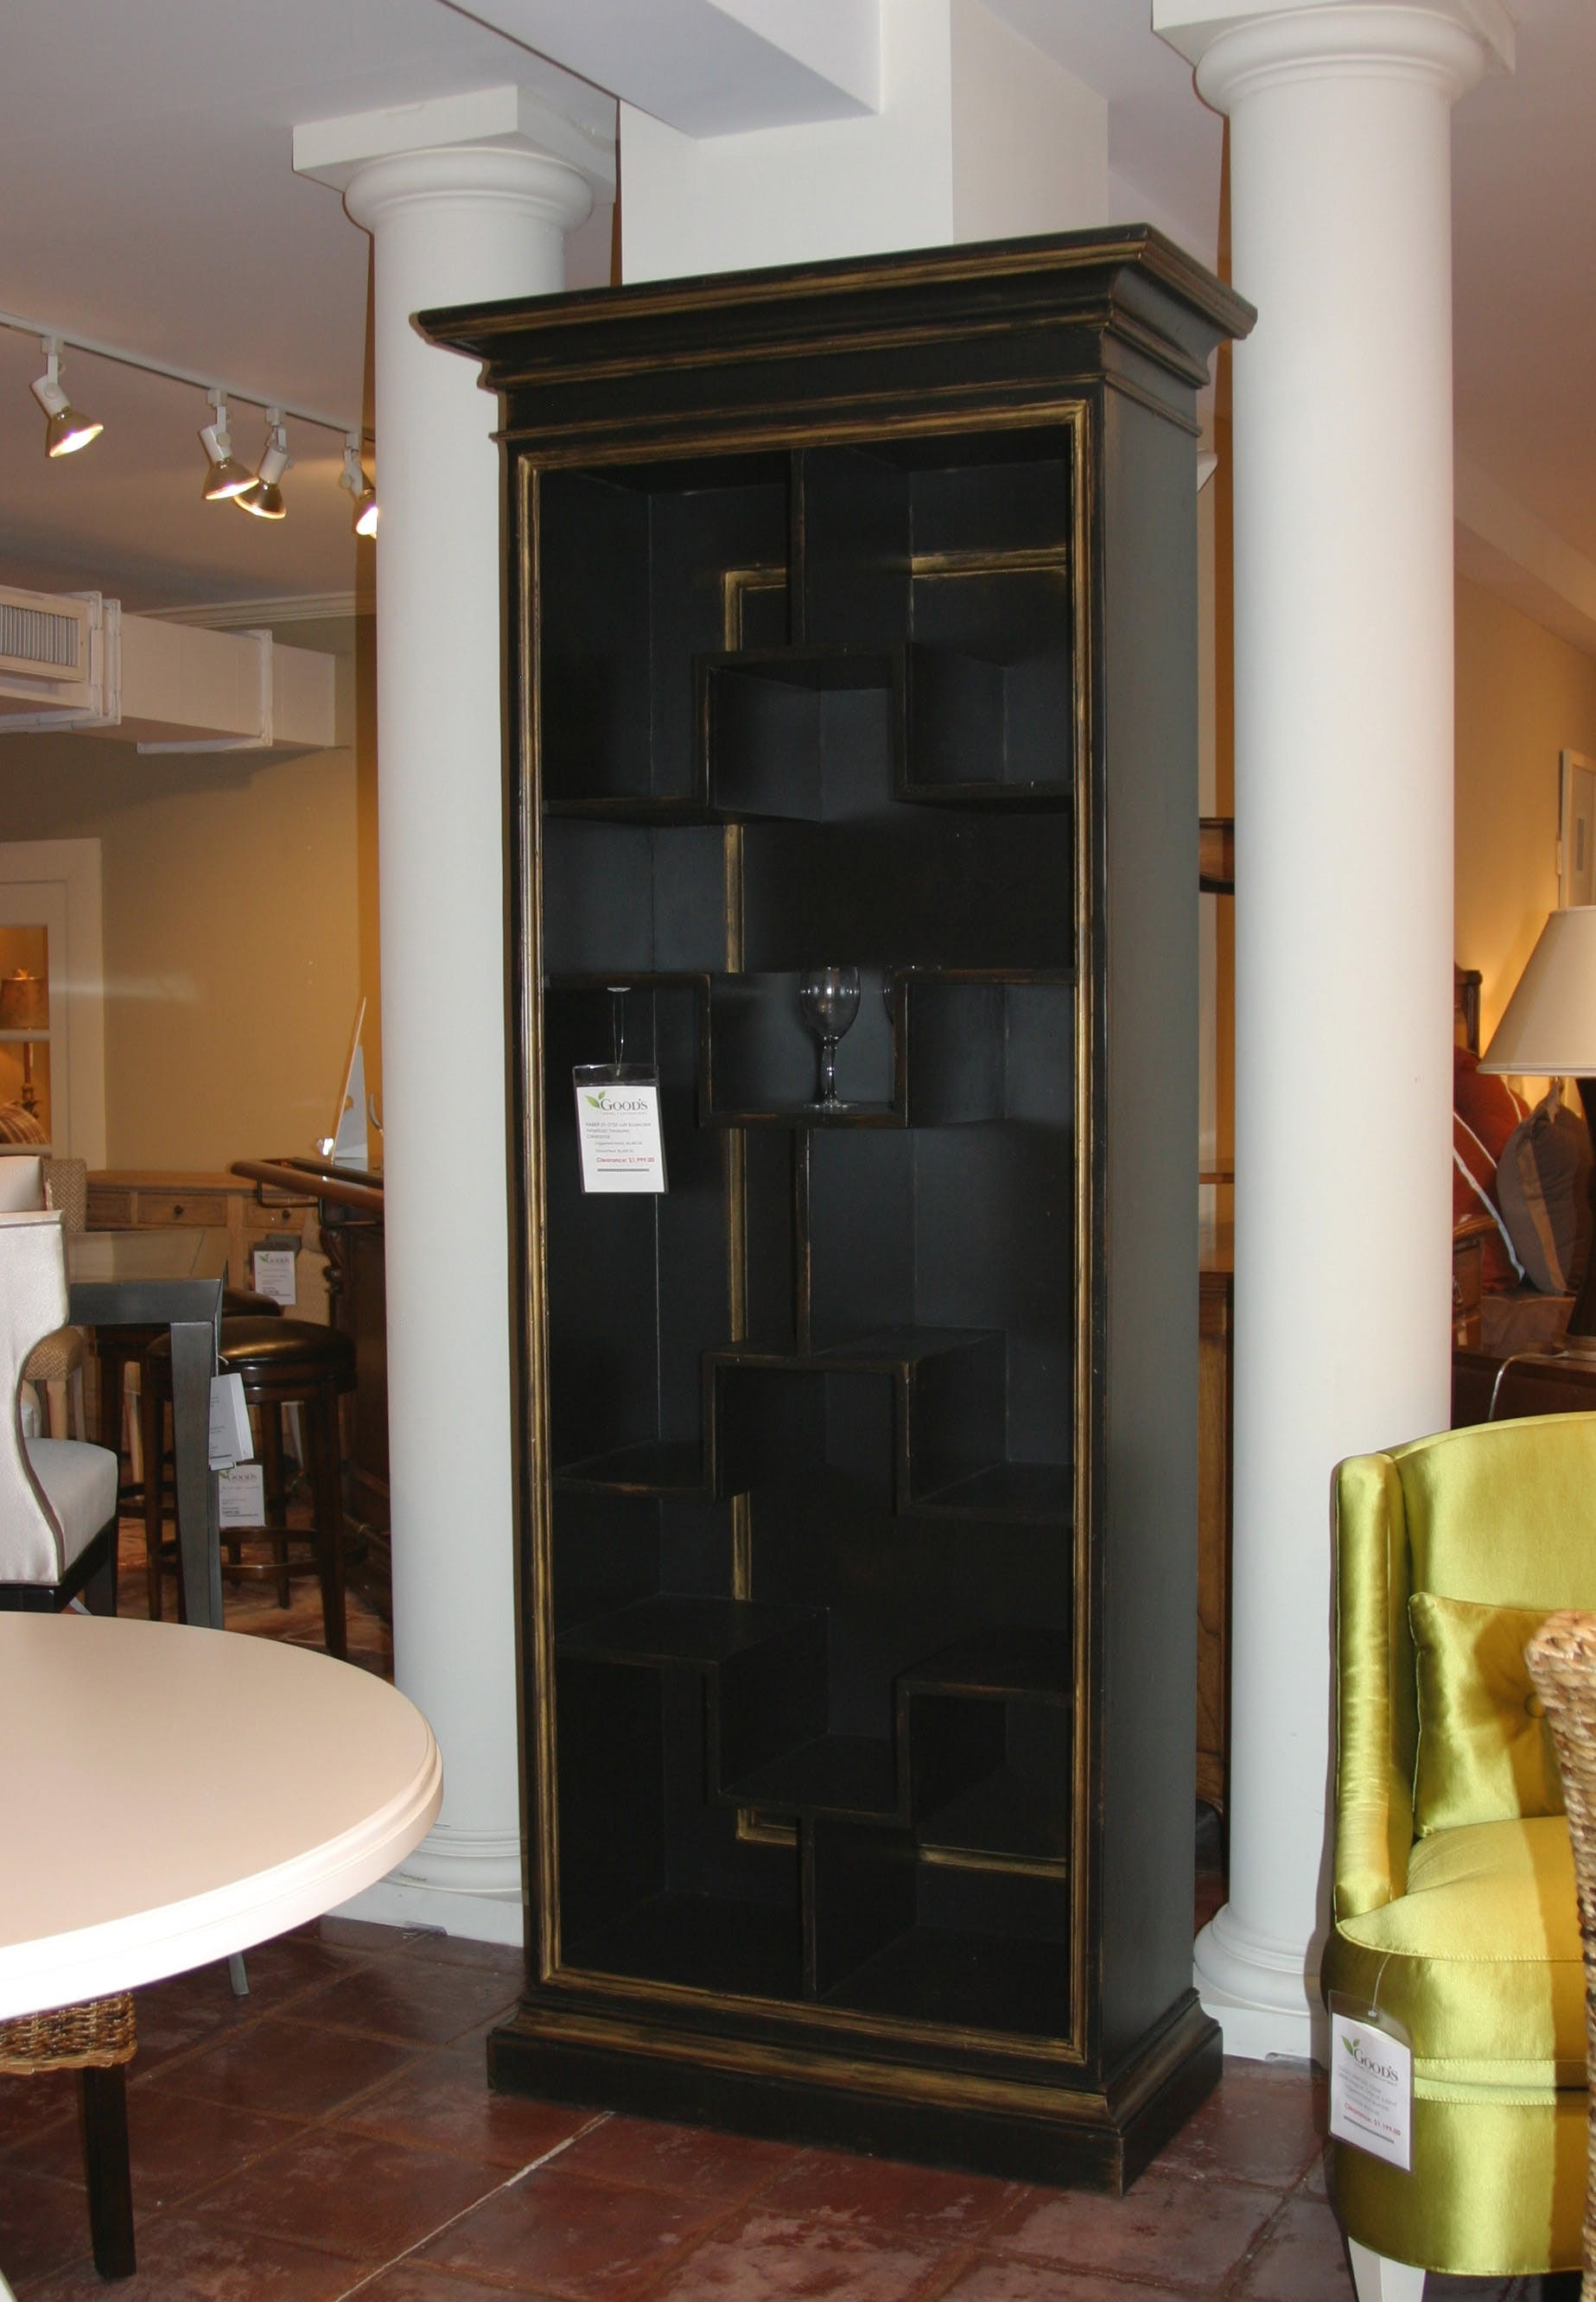 Delicieux Goodu0027s Furniture Outlet American Treasures Loft Bookcase By Habersham  Furniture 01 2755 Clearance